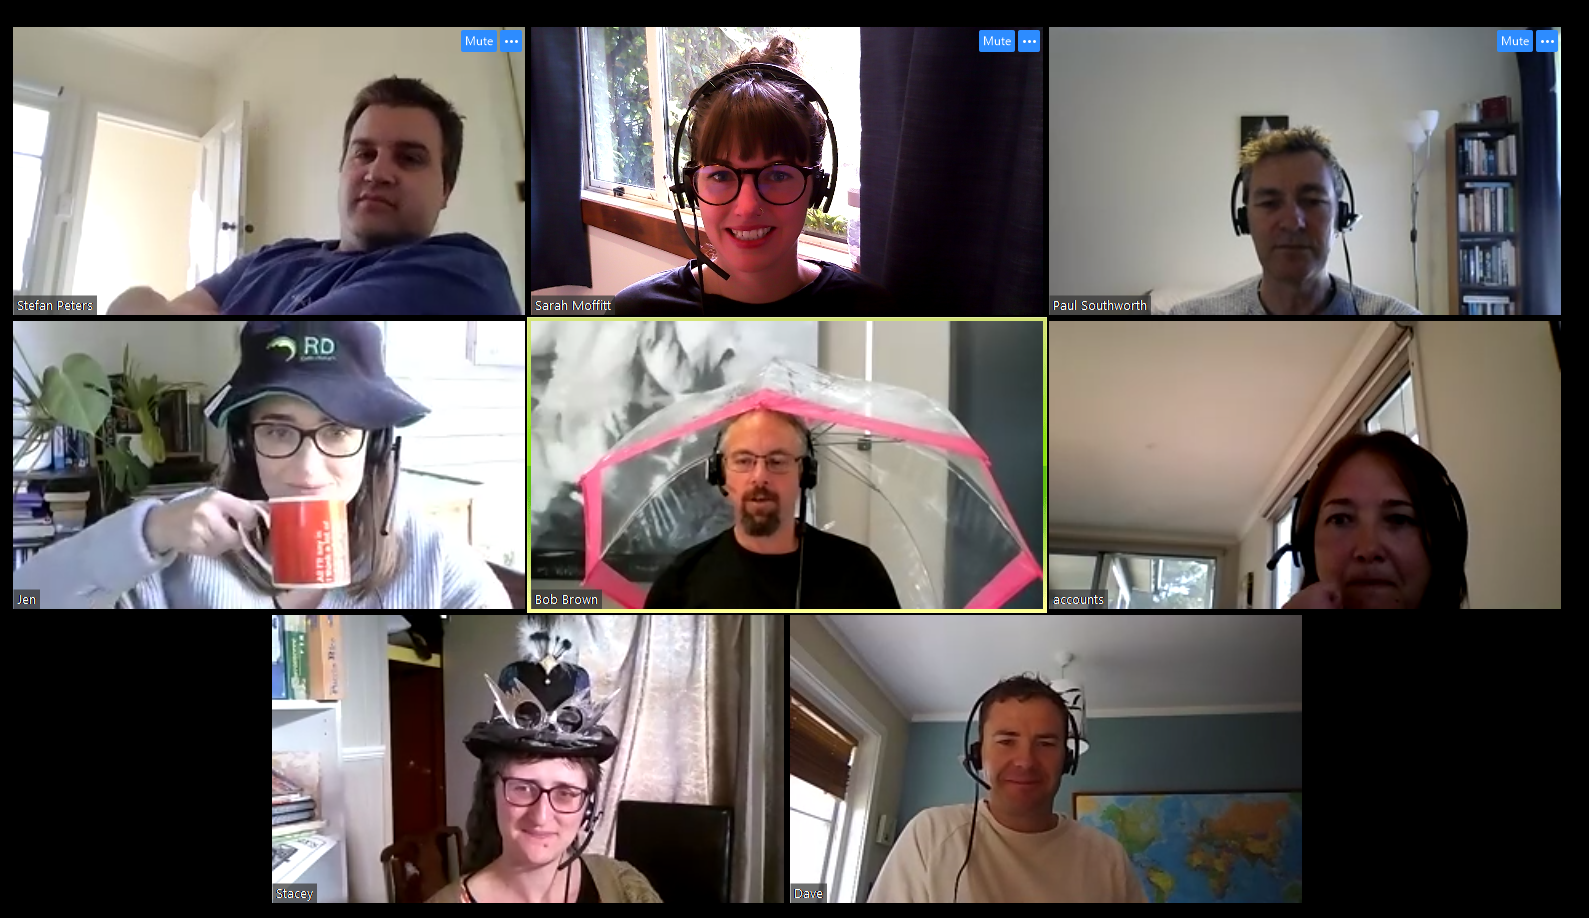 The Turboweb team have their daily roundup meeting on Zoom